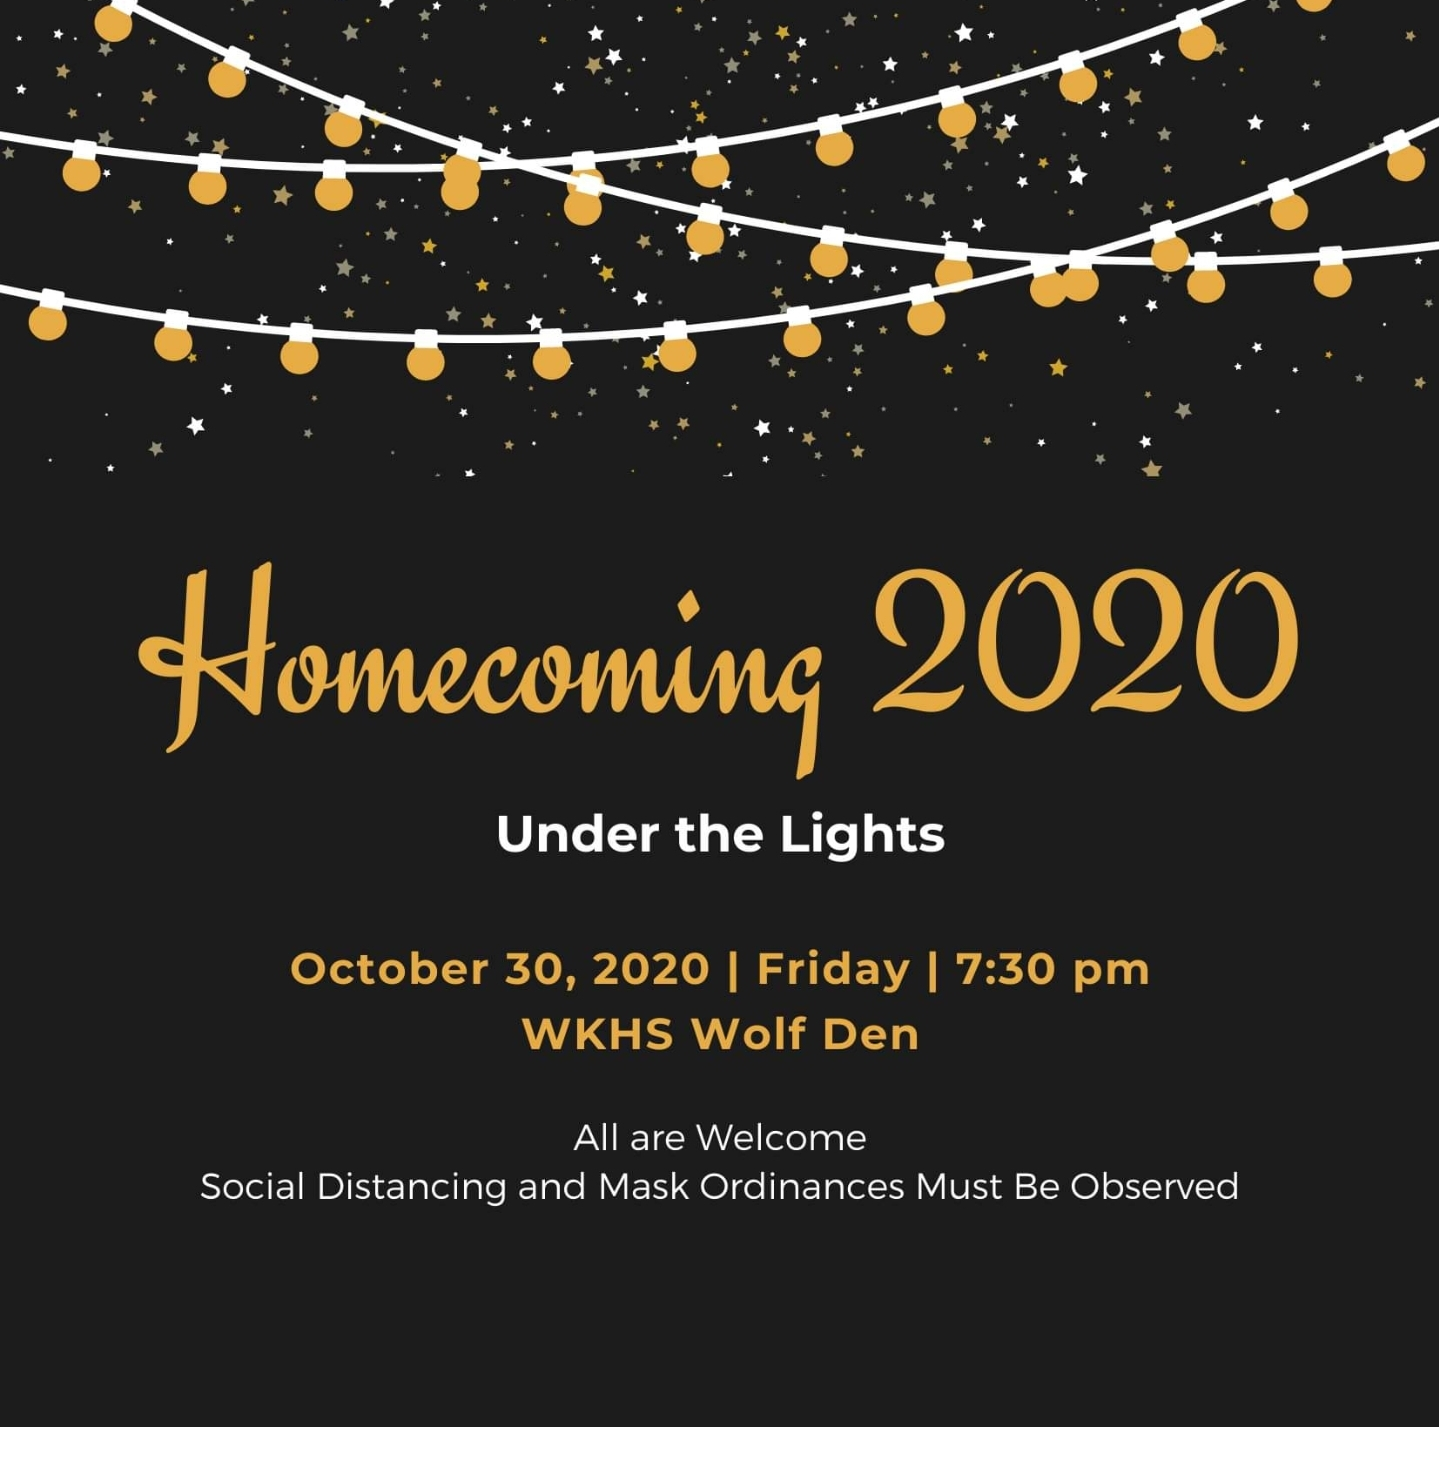 Homecoming 2020 Under the Lights